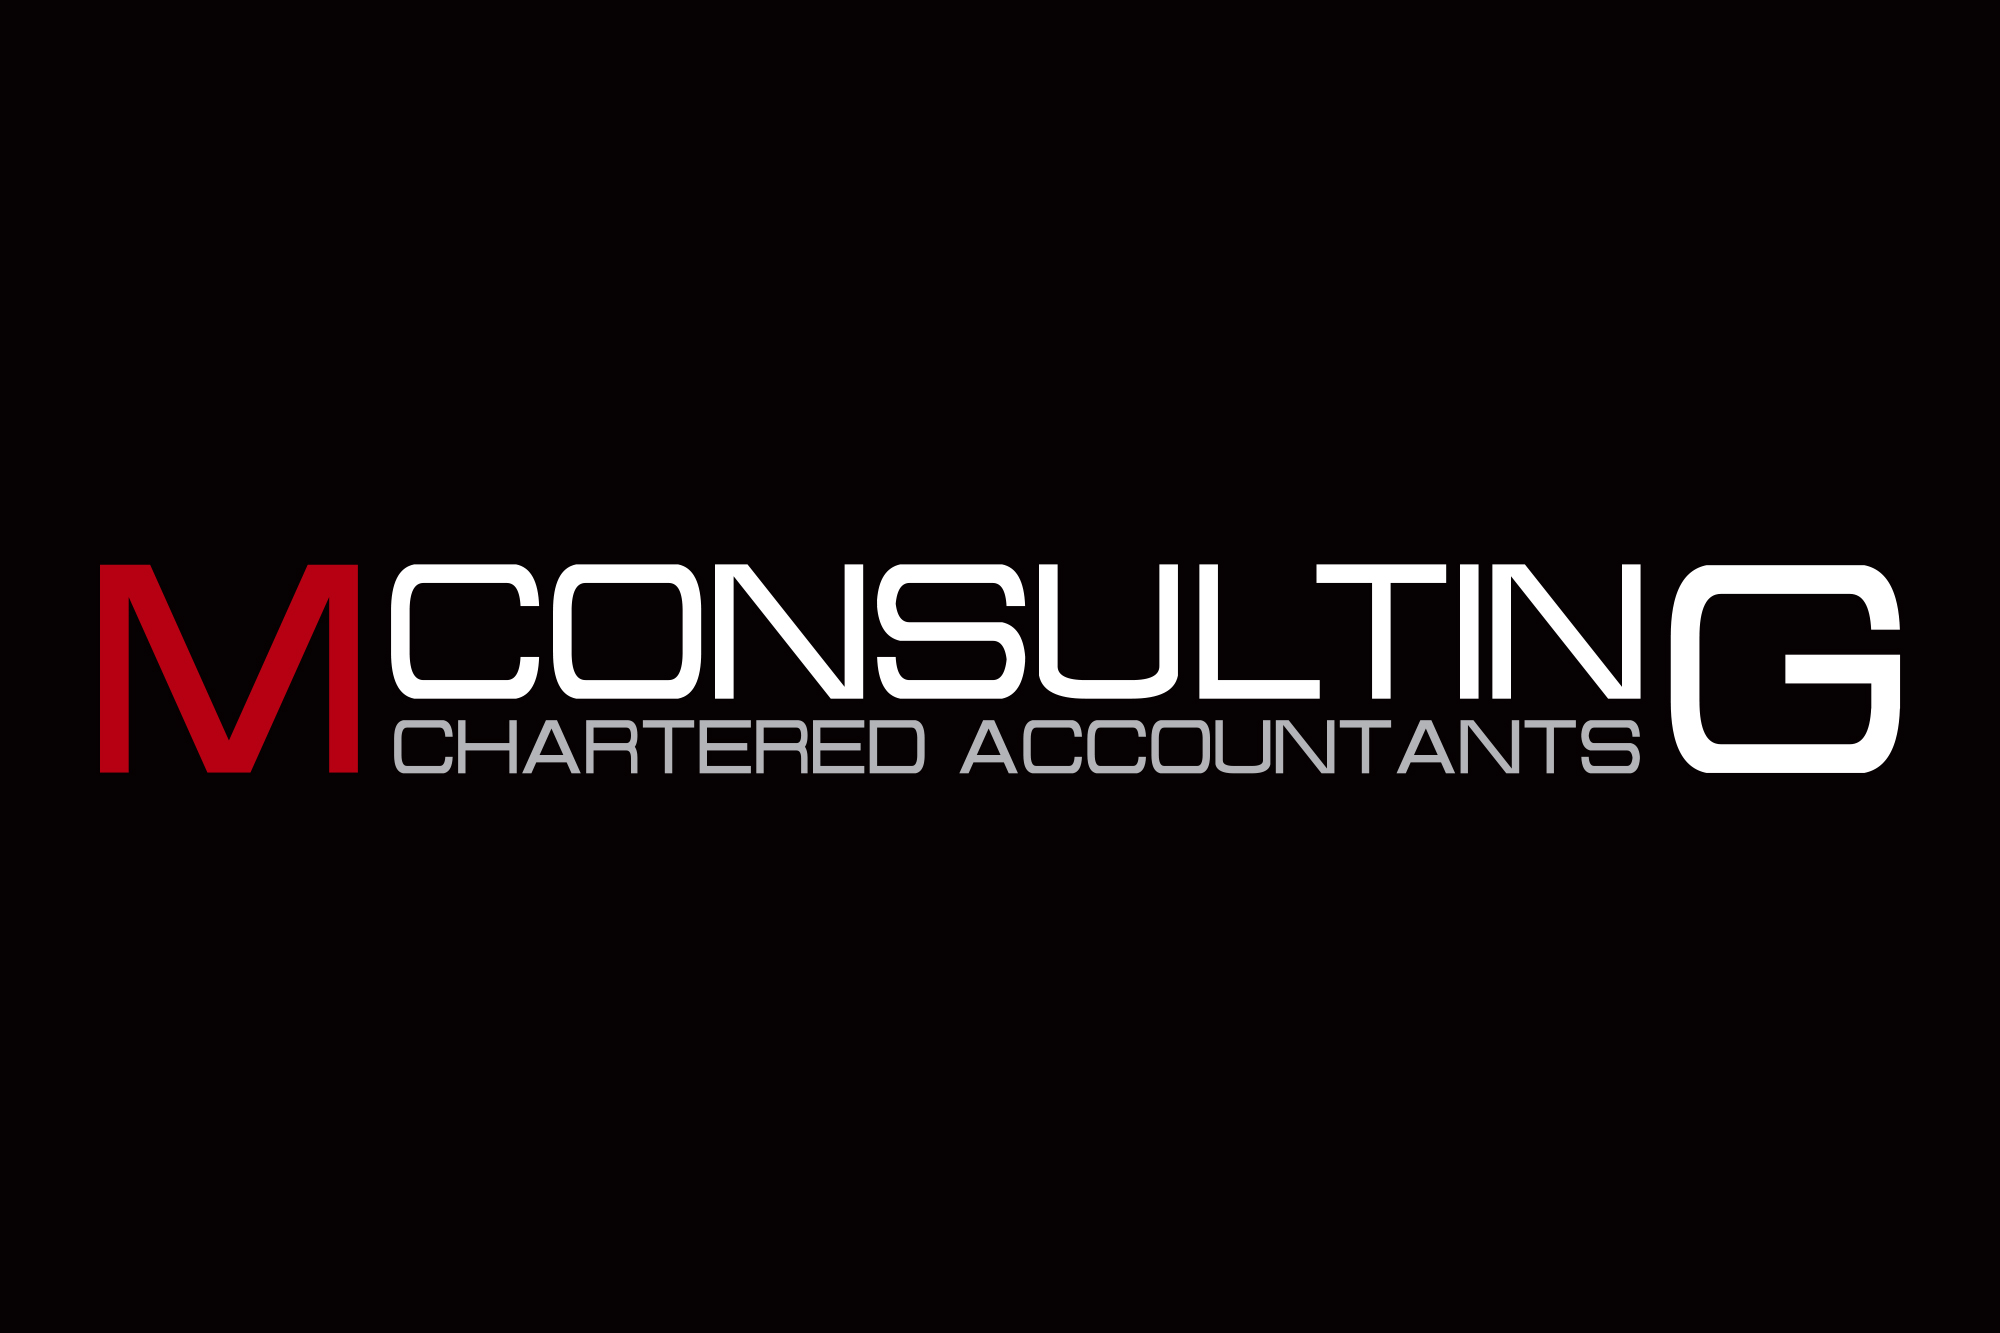 M Consulting Chartered Accountants